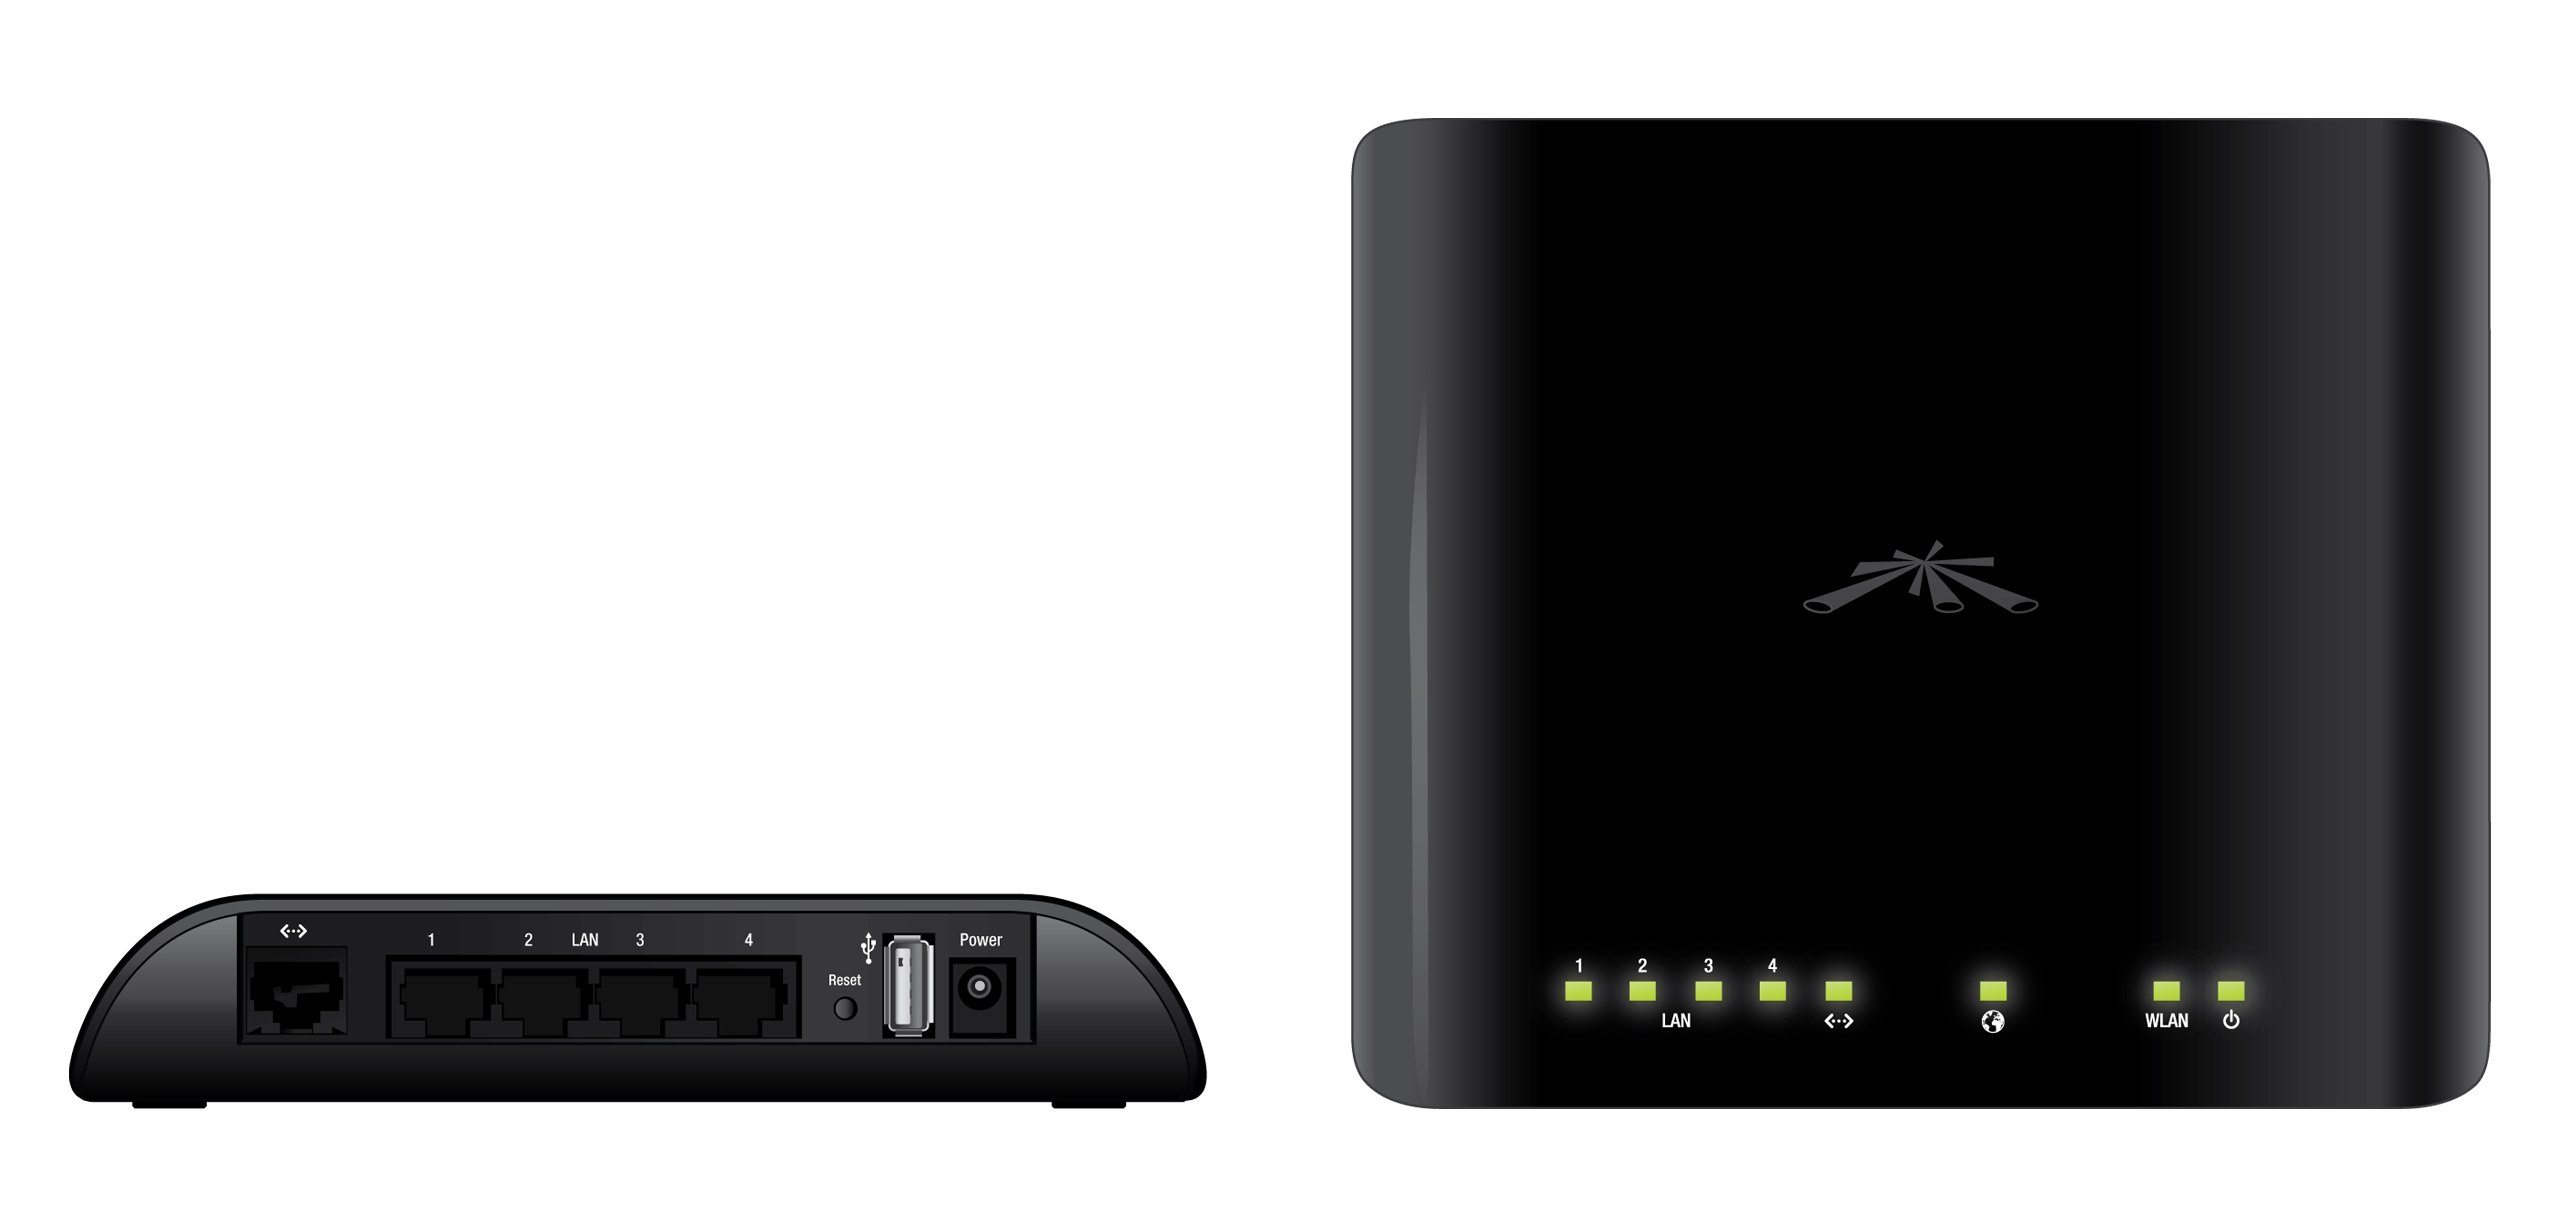 Ubiquiti AirRouter Indoor WiFi Router